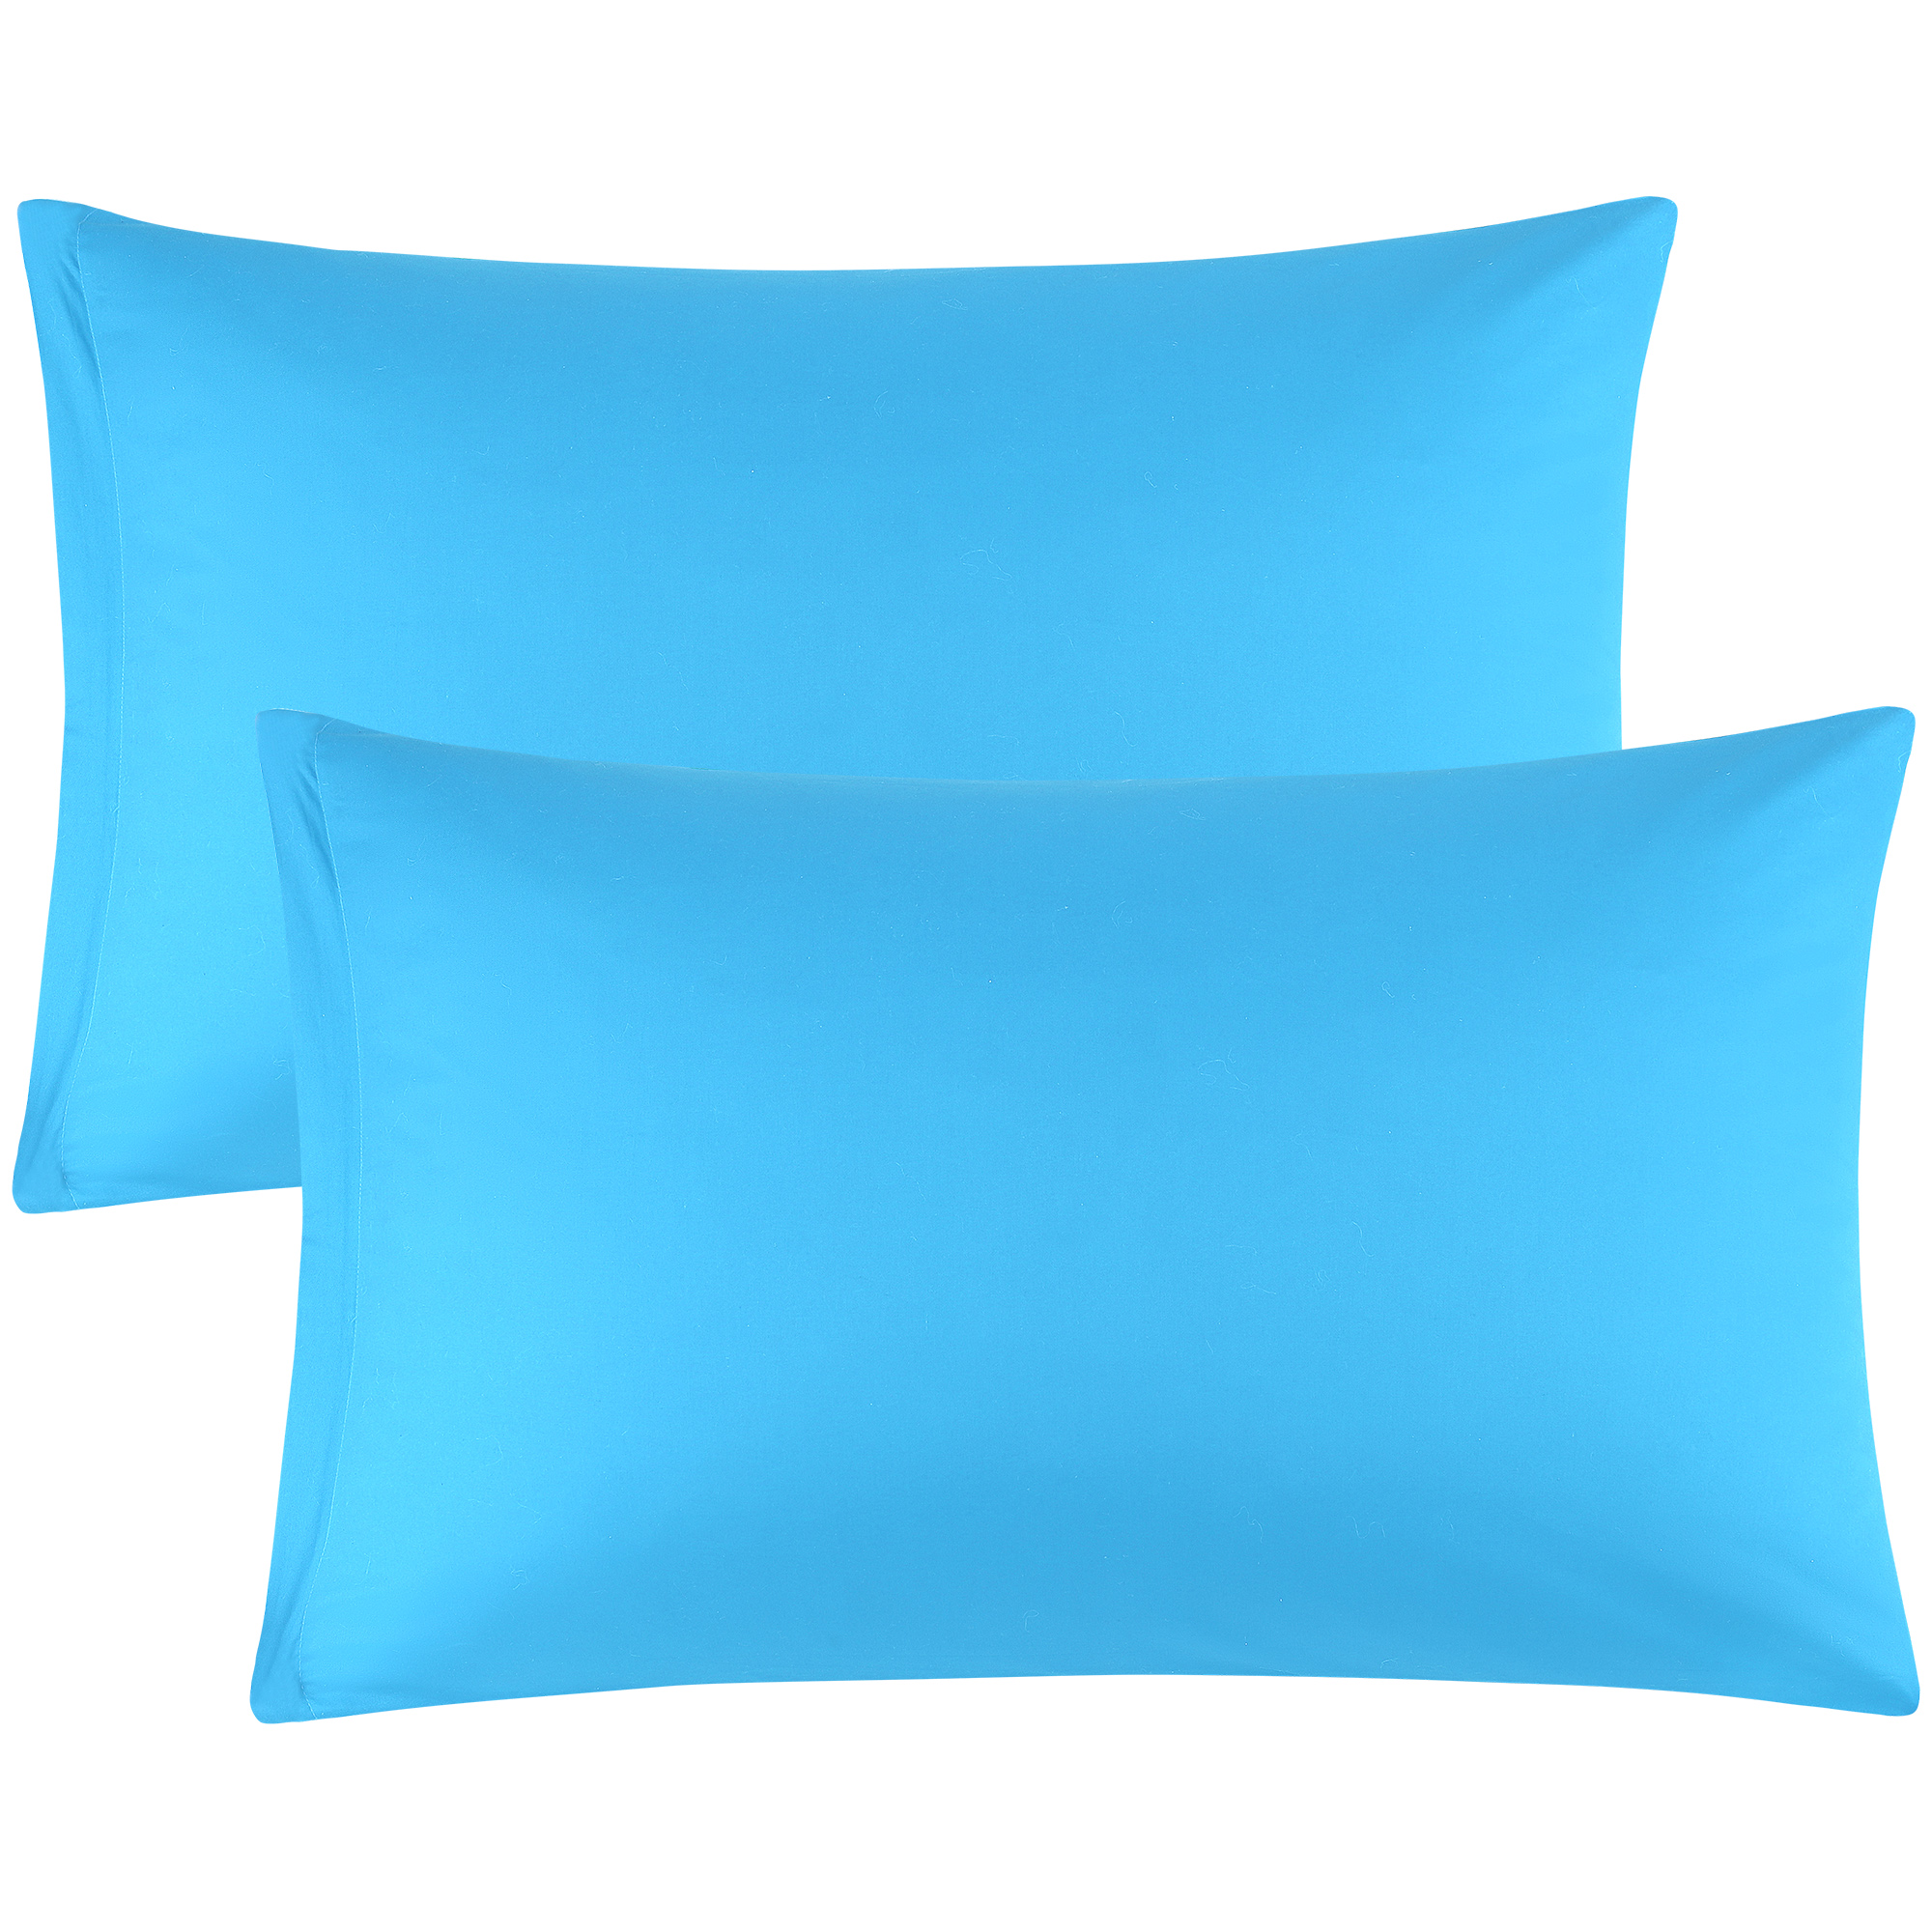 Zippered Cases Pillowcases Covers Egyptian Cotton 2-Pack (20 x 26 Inch, Blue)